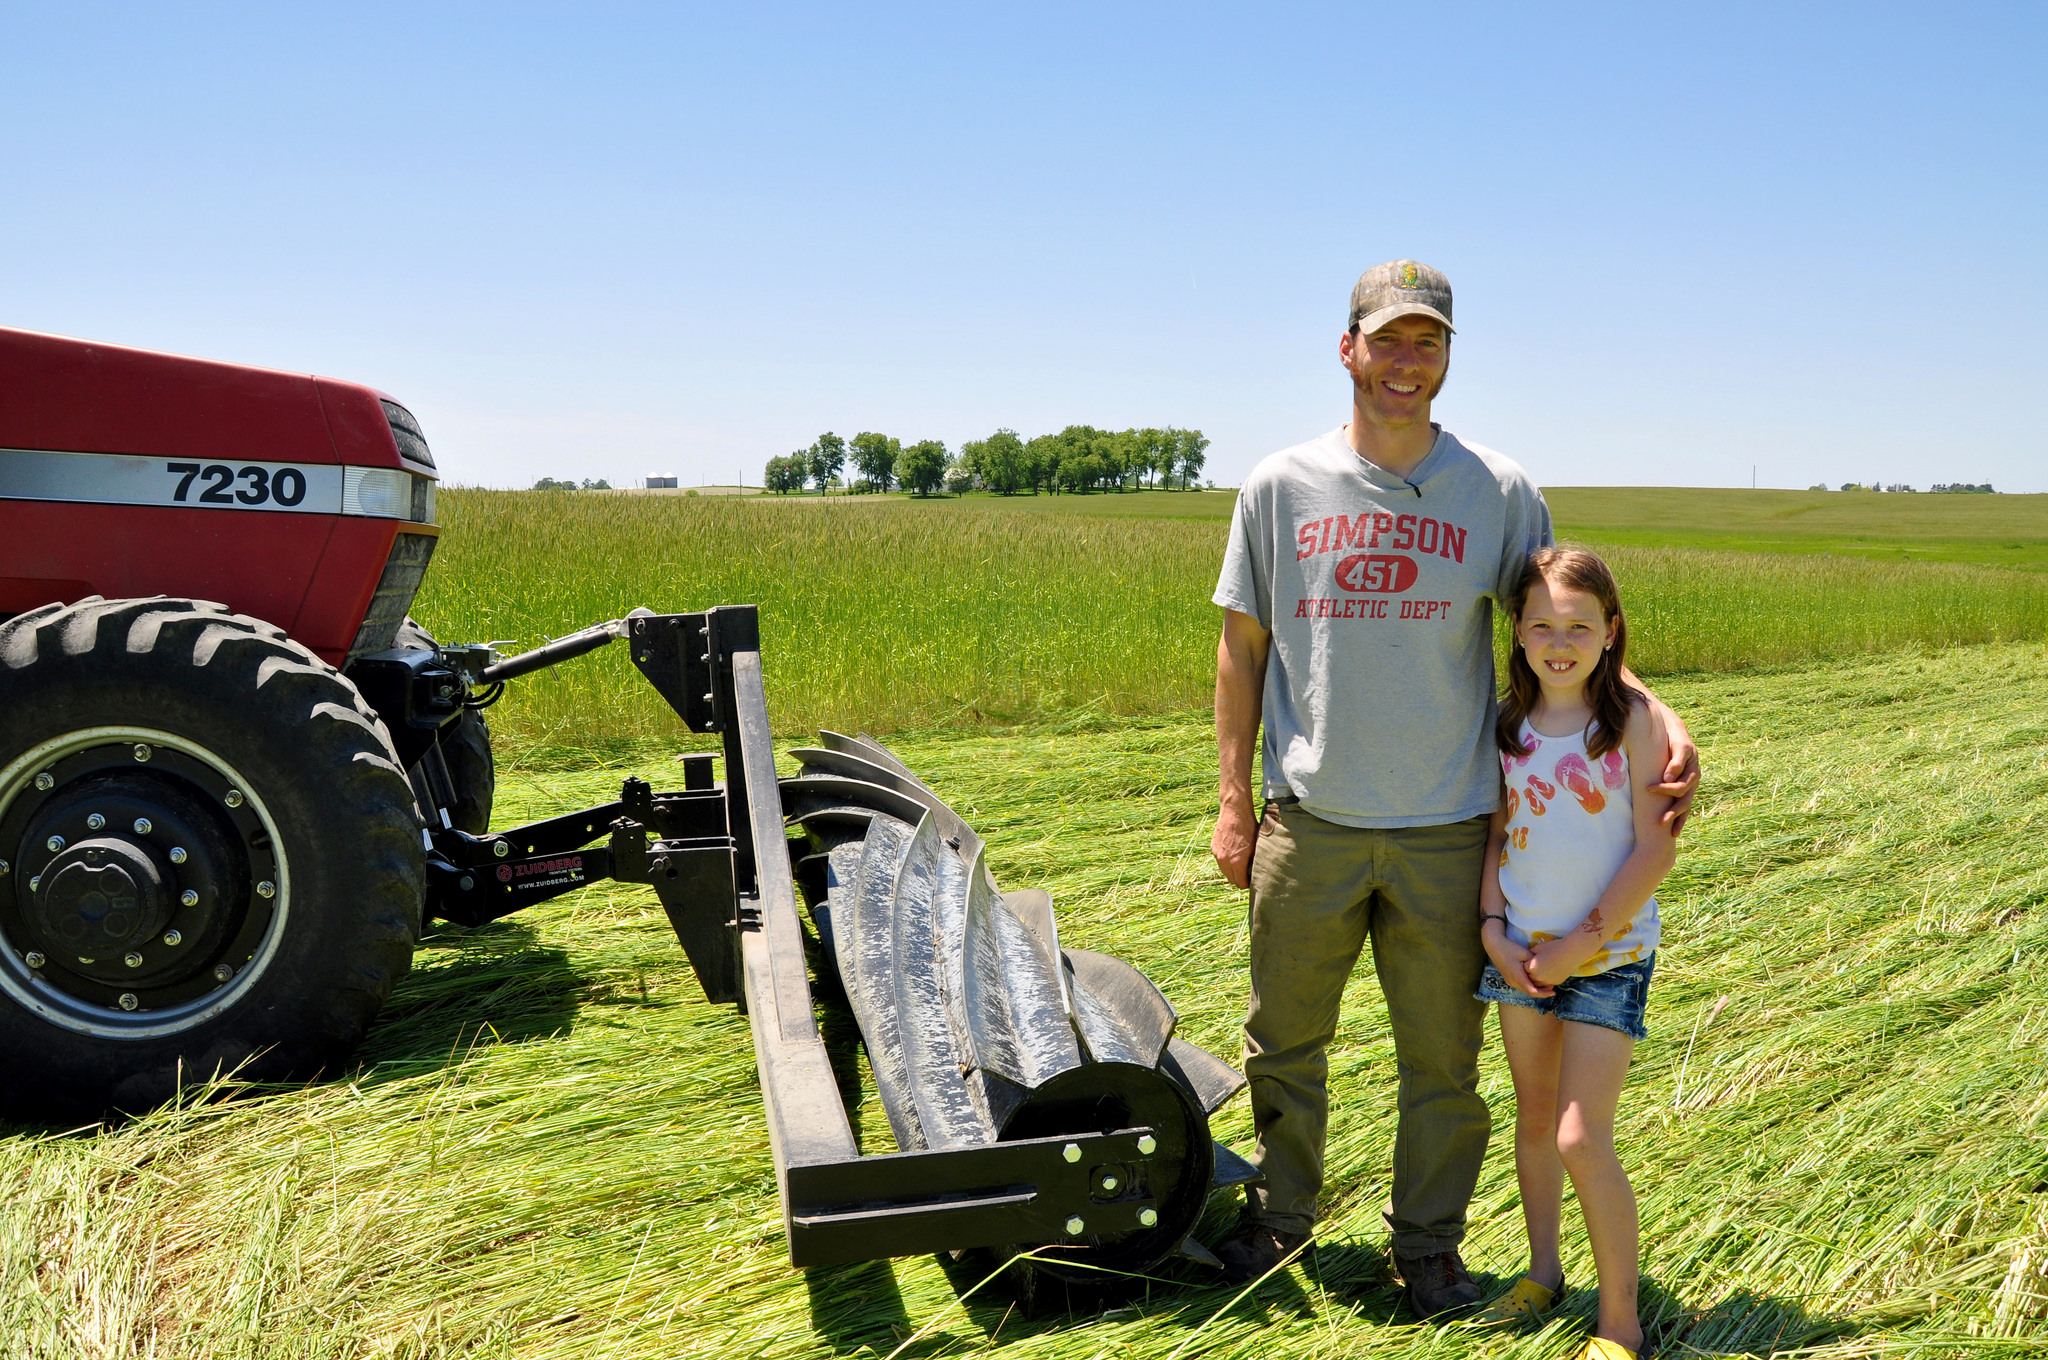 #Fridaysonthefarm: Iowa Farmer Uses Roller Crimper in Organic No-Till Photo 2